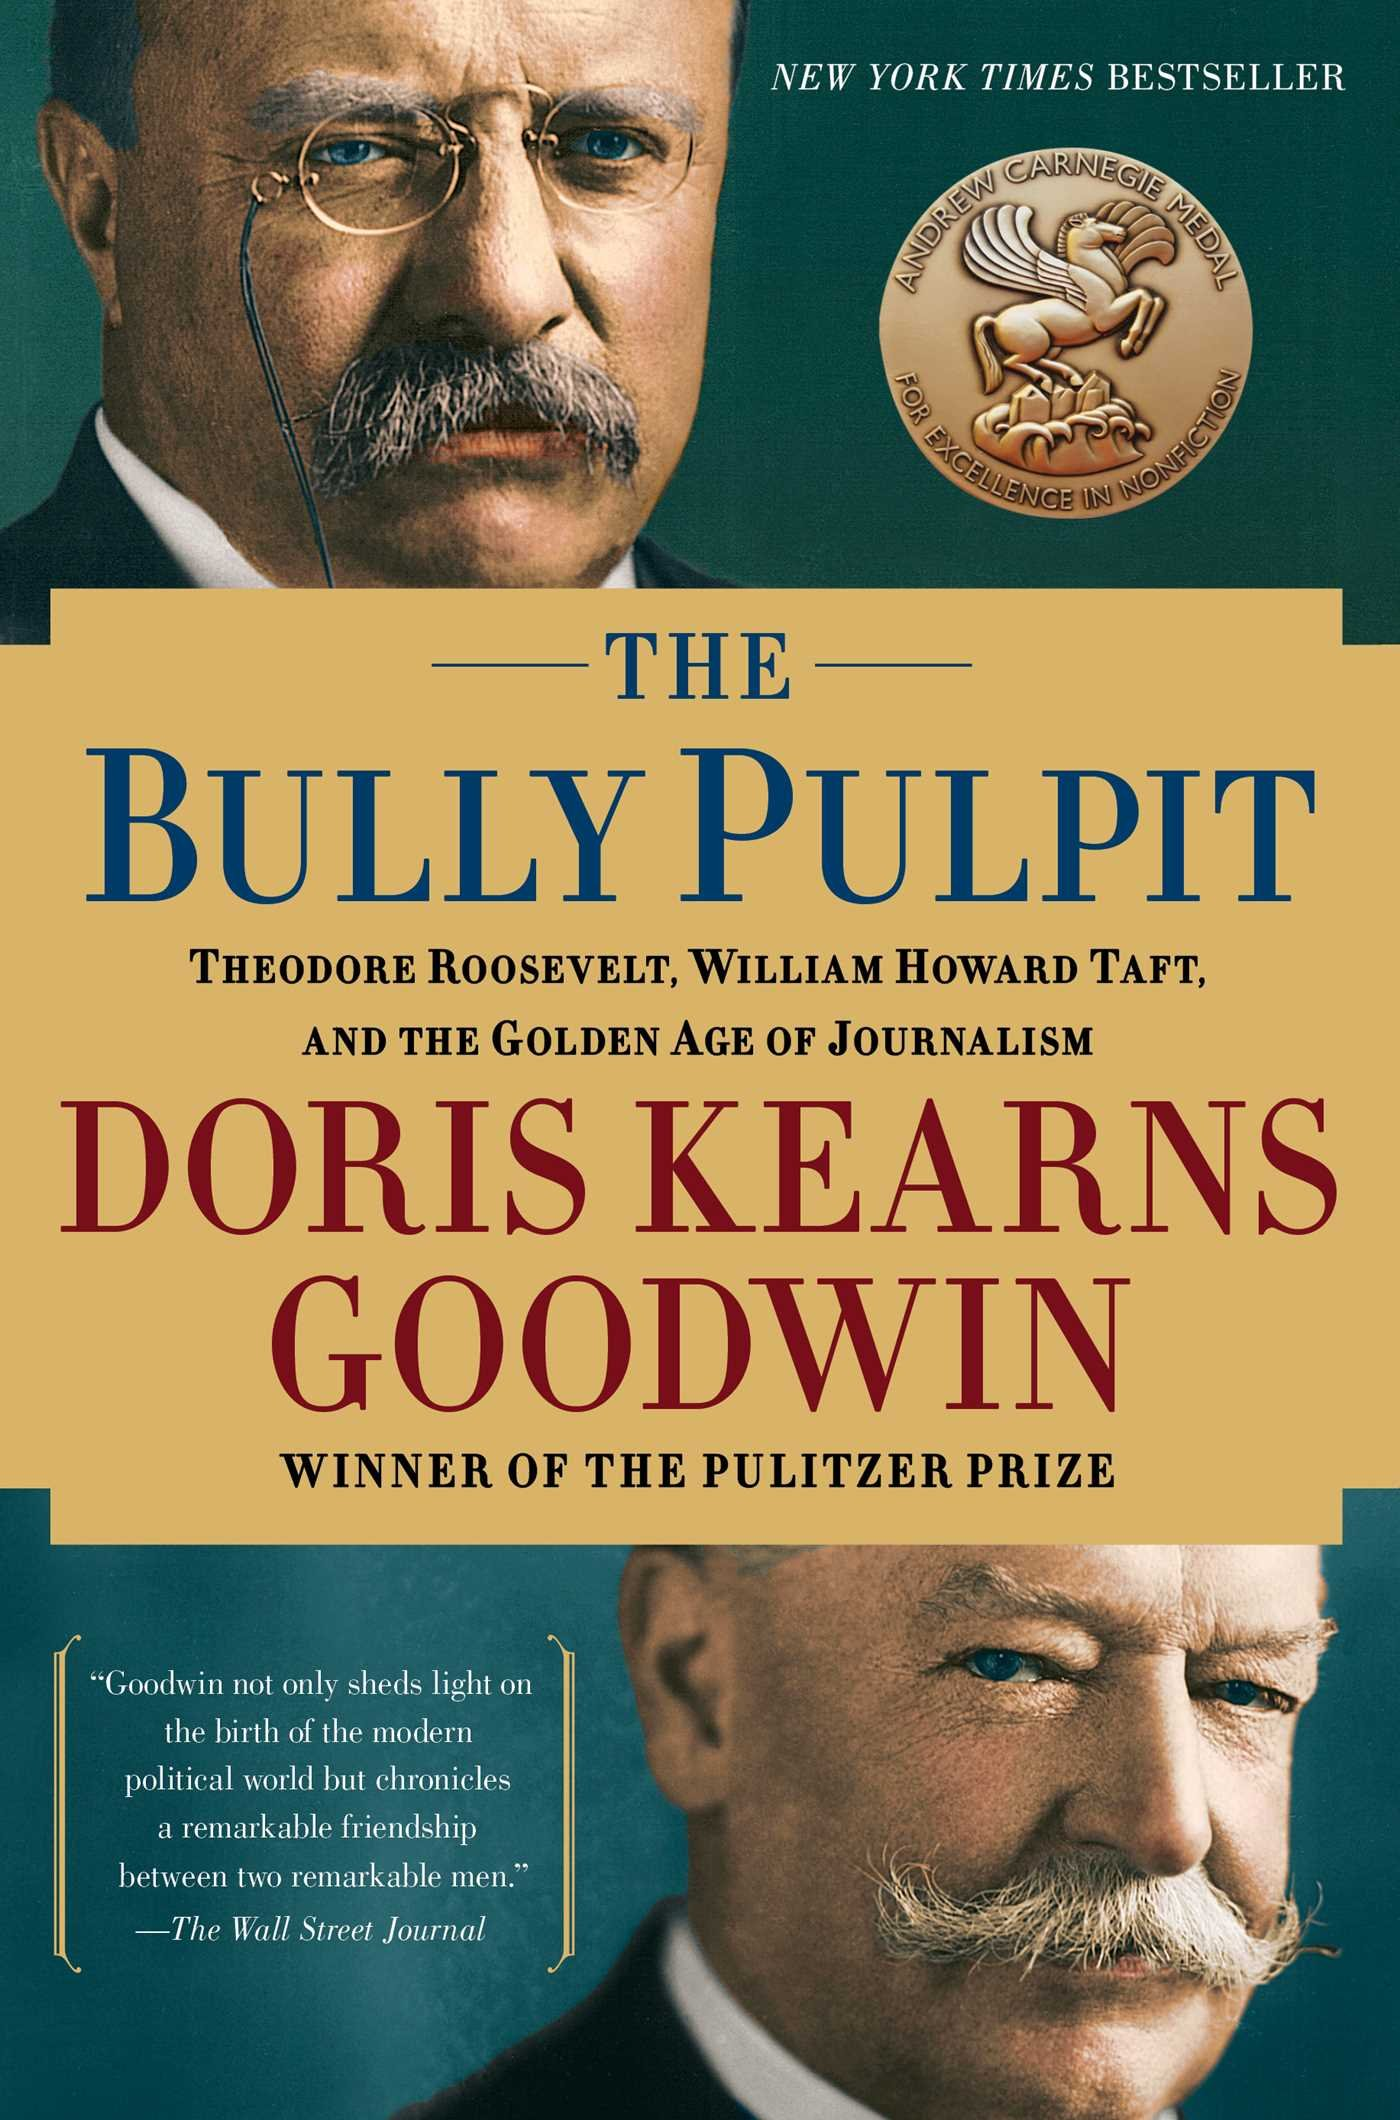 The Bully Pulpit: Theodore Roosevelt and the Golden Age of Journalism by Simon & Schuster